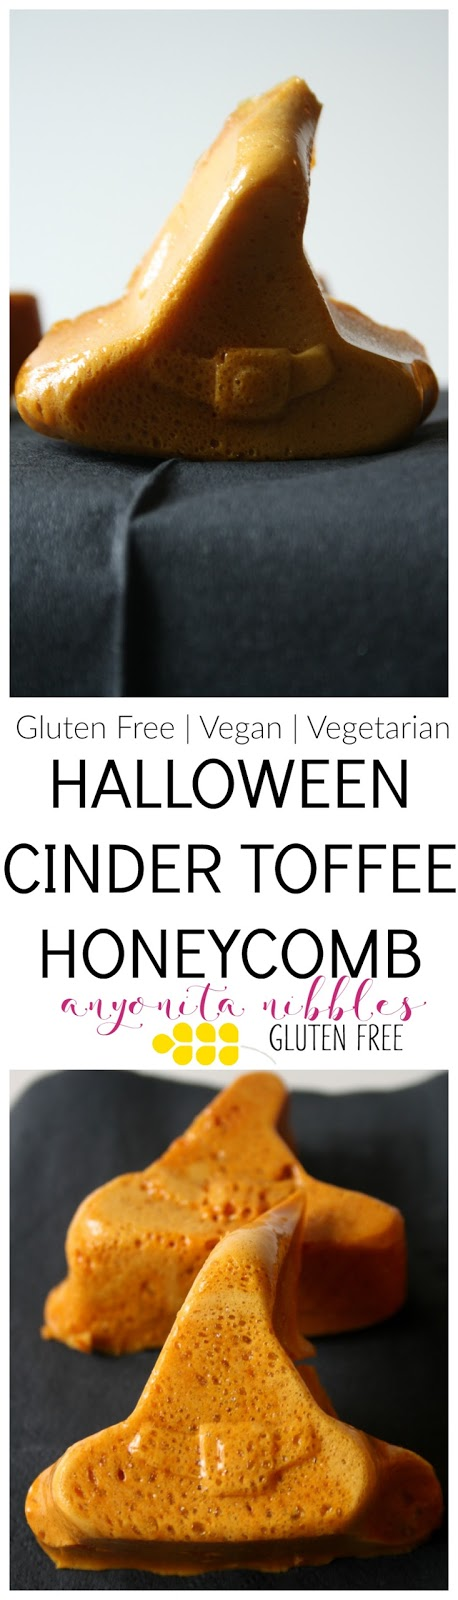 Gluten Free Halloween Cinder Toffee or Honeycomb Witch's Hats | Anyonita Nibbles